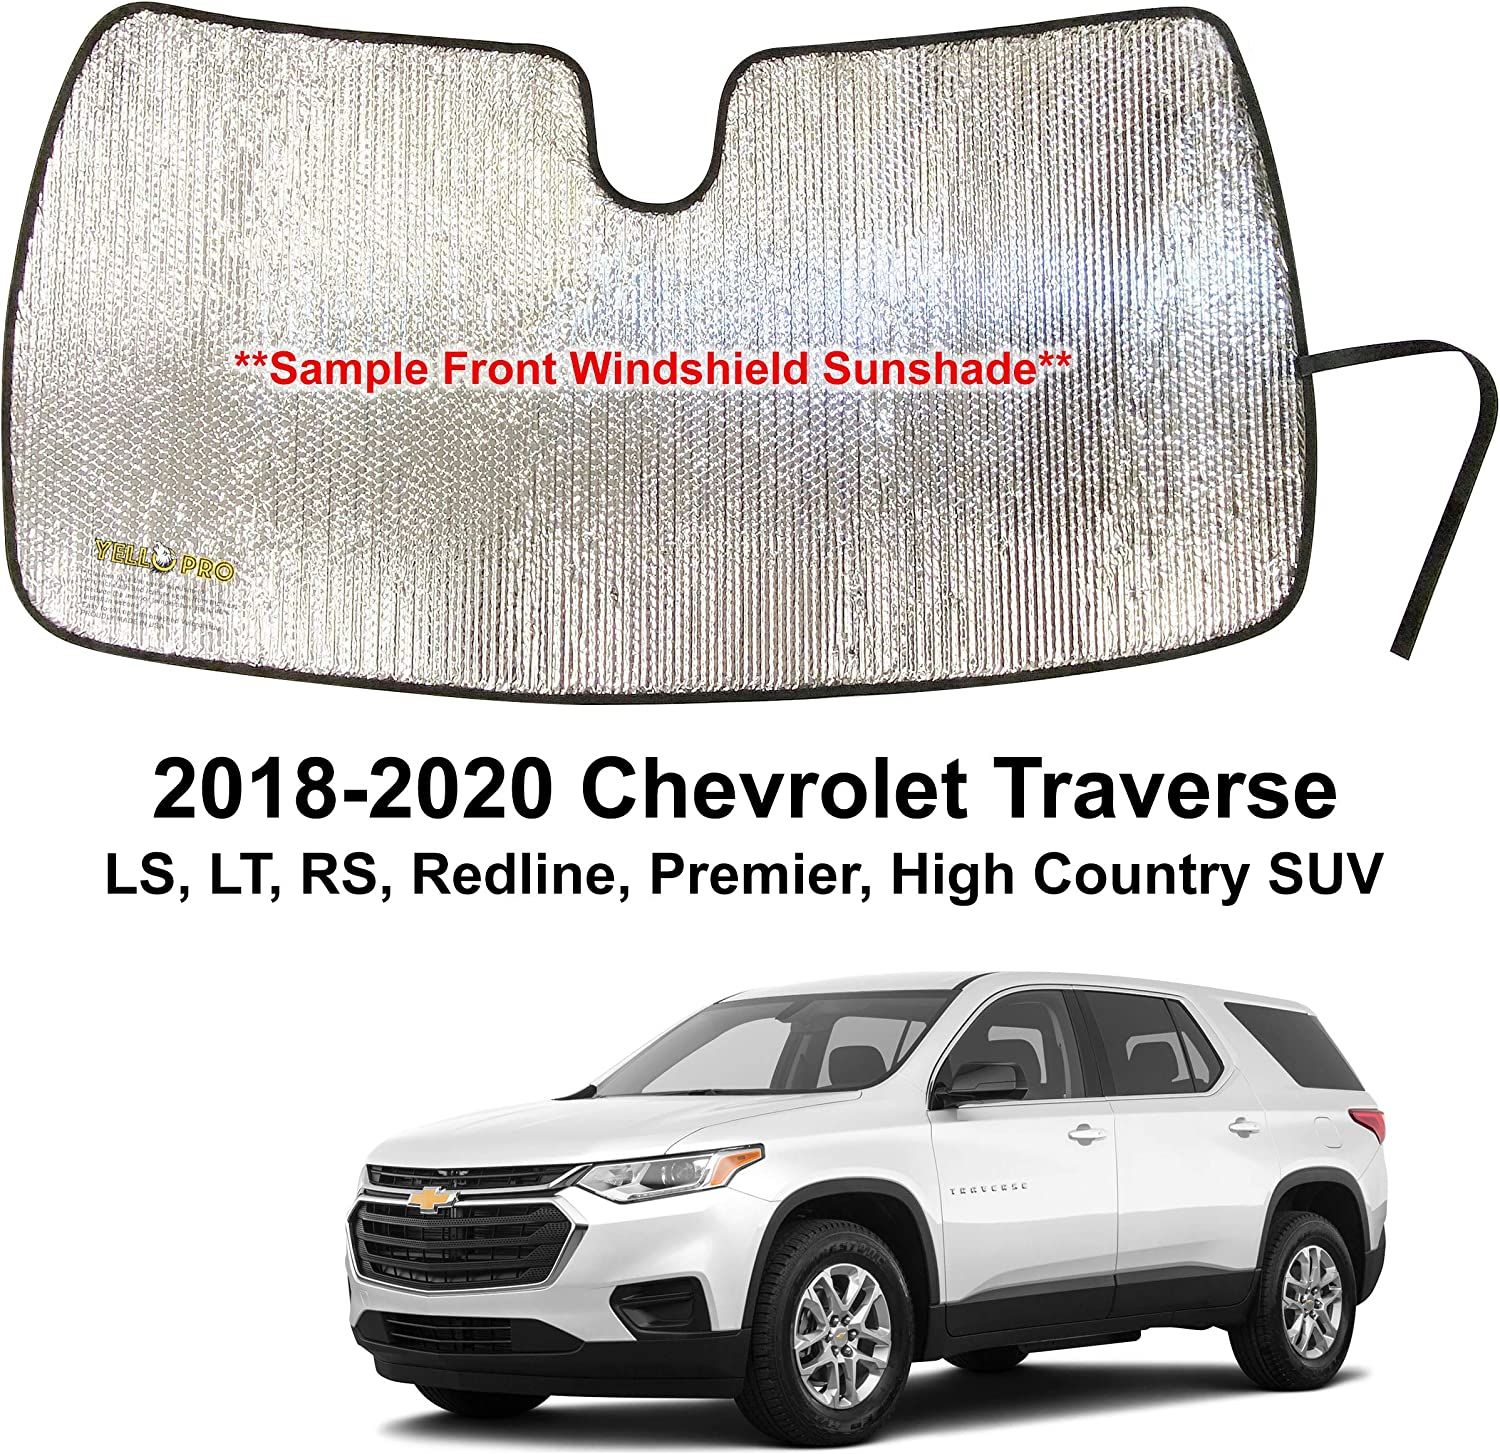 YelloPro Custom Fit Automotive Reflective Front Windshield Sunshade Accessories UV Reflector Sun Protection for 2018 2019 2020 Chevrolet Traverse LS Premier High Country SUV Redline RS LT